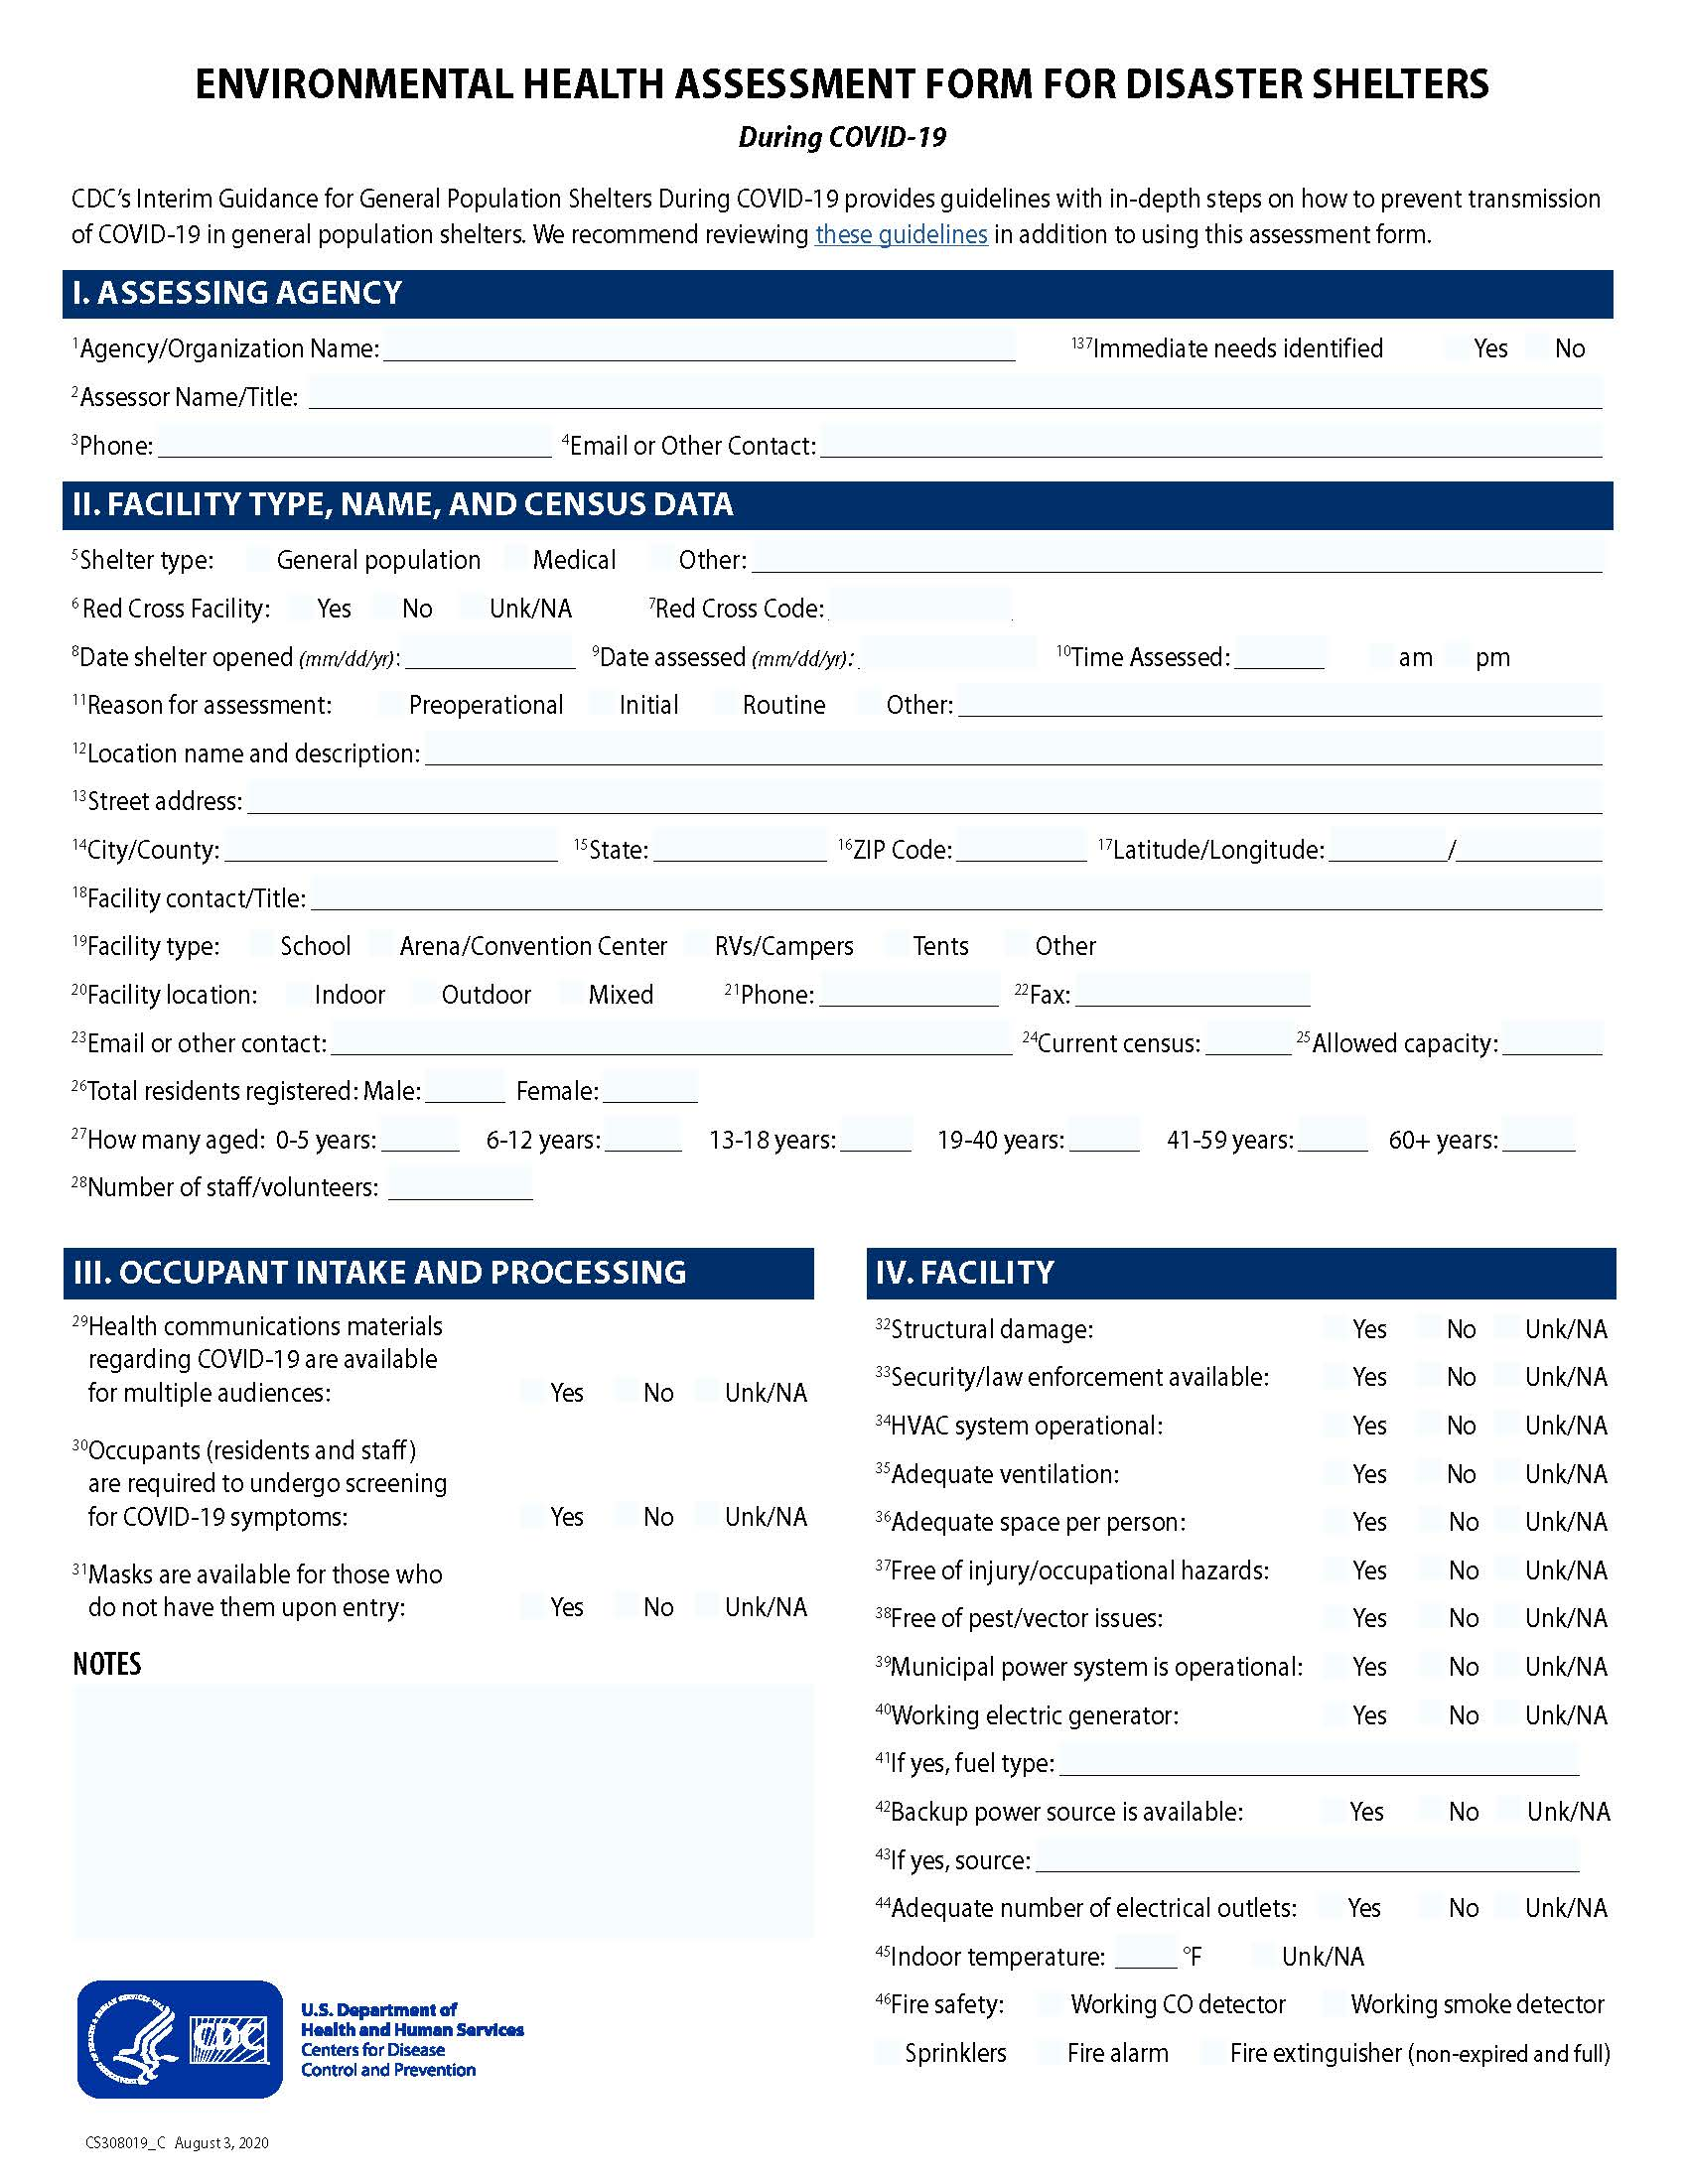 Environmental Health Assessment Form for Disaster Shelters during COVID 19